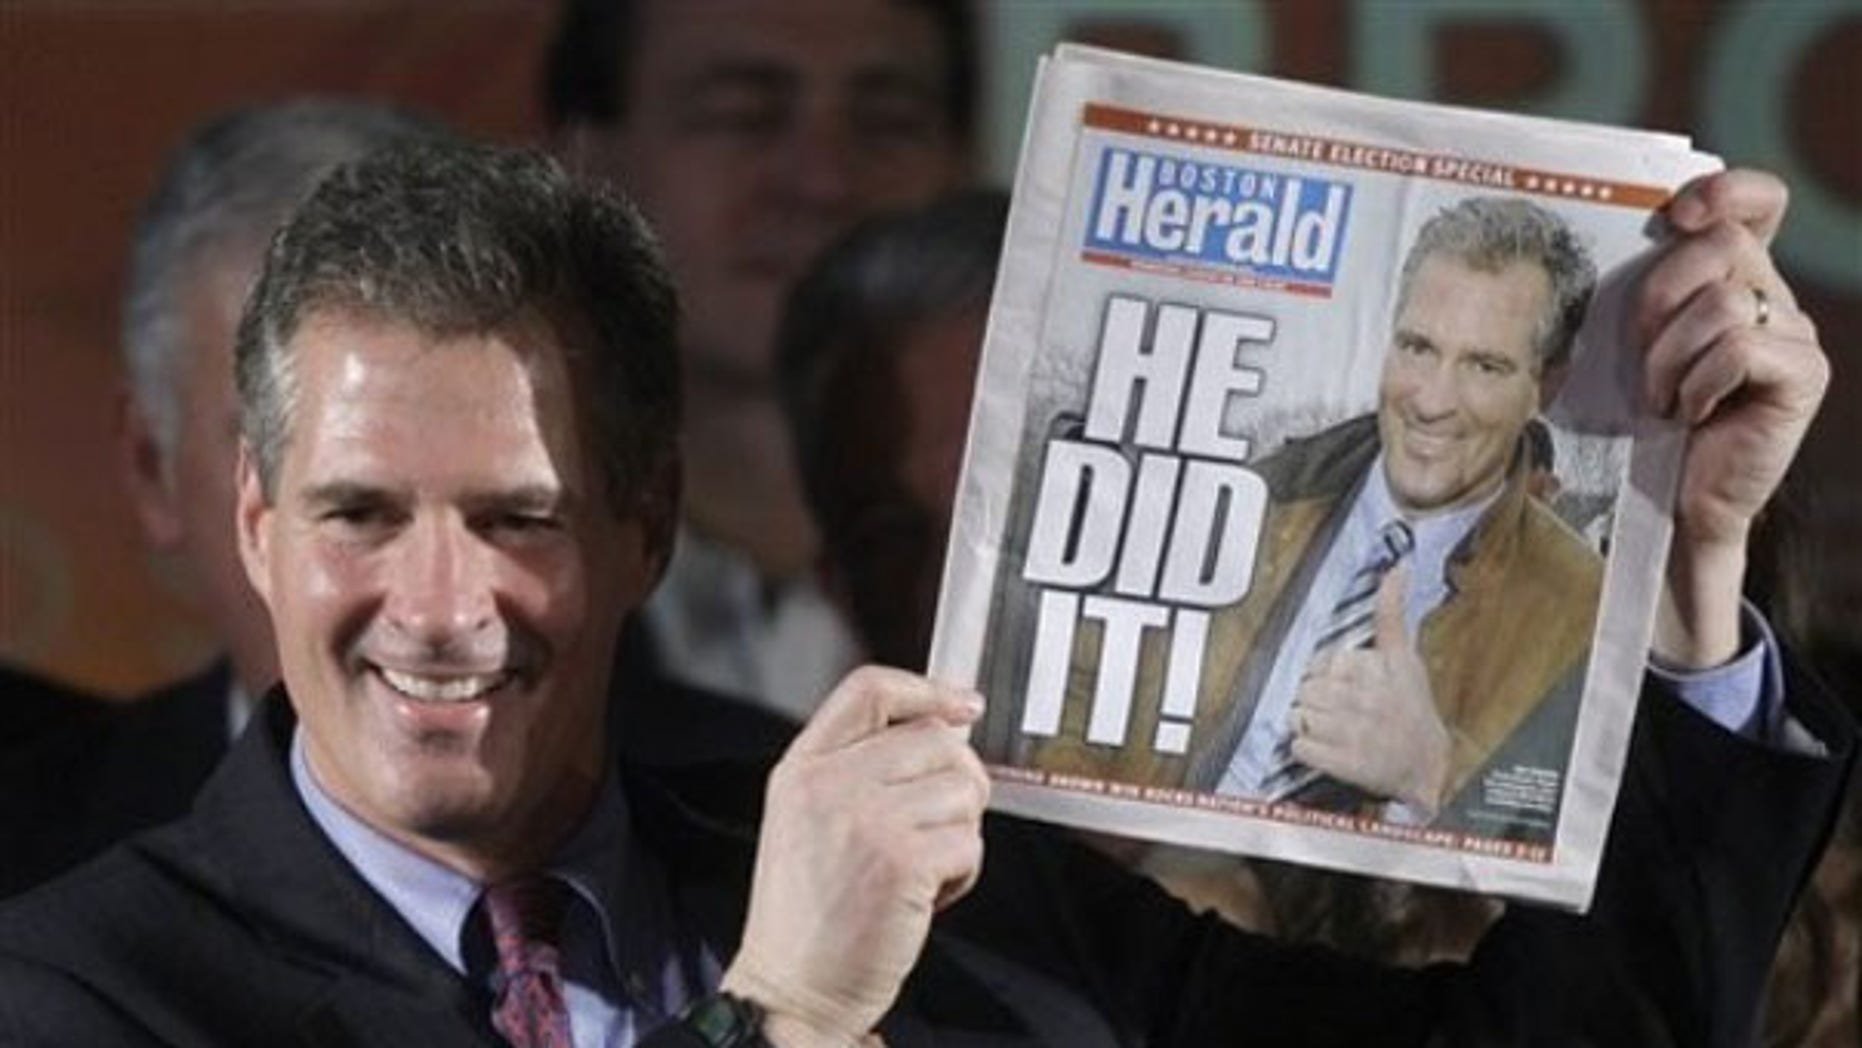 Scott Brown holds up a copy of the Boston Herald as he celebrates his election victory in Boston Jan. 19. (AP Photo)